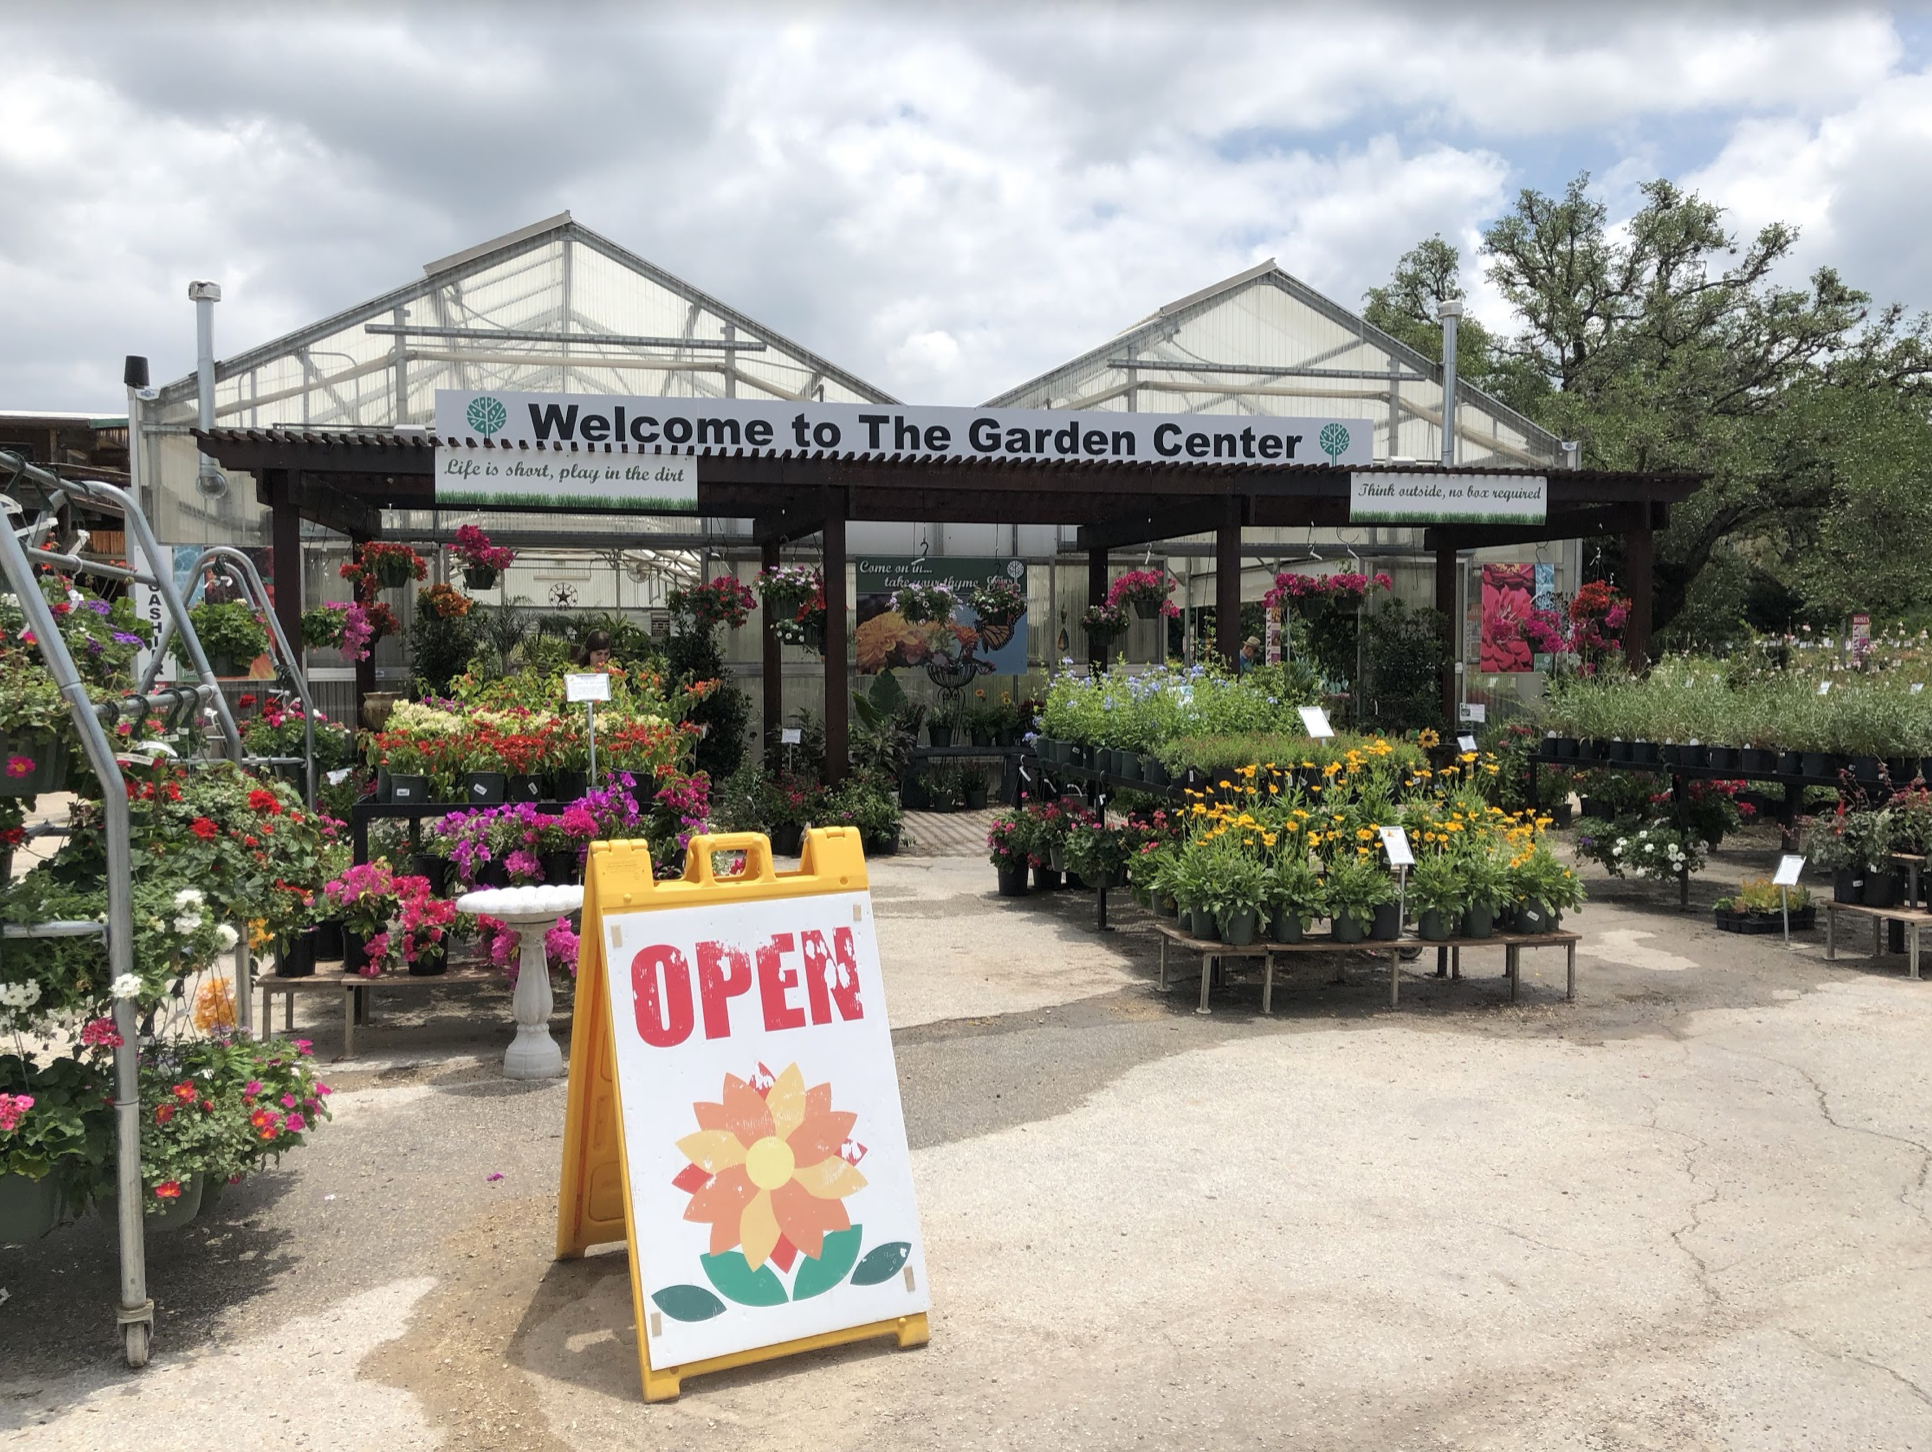 The Garden Center in San Antonio, Texas